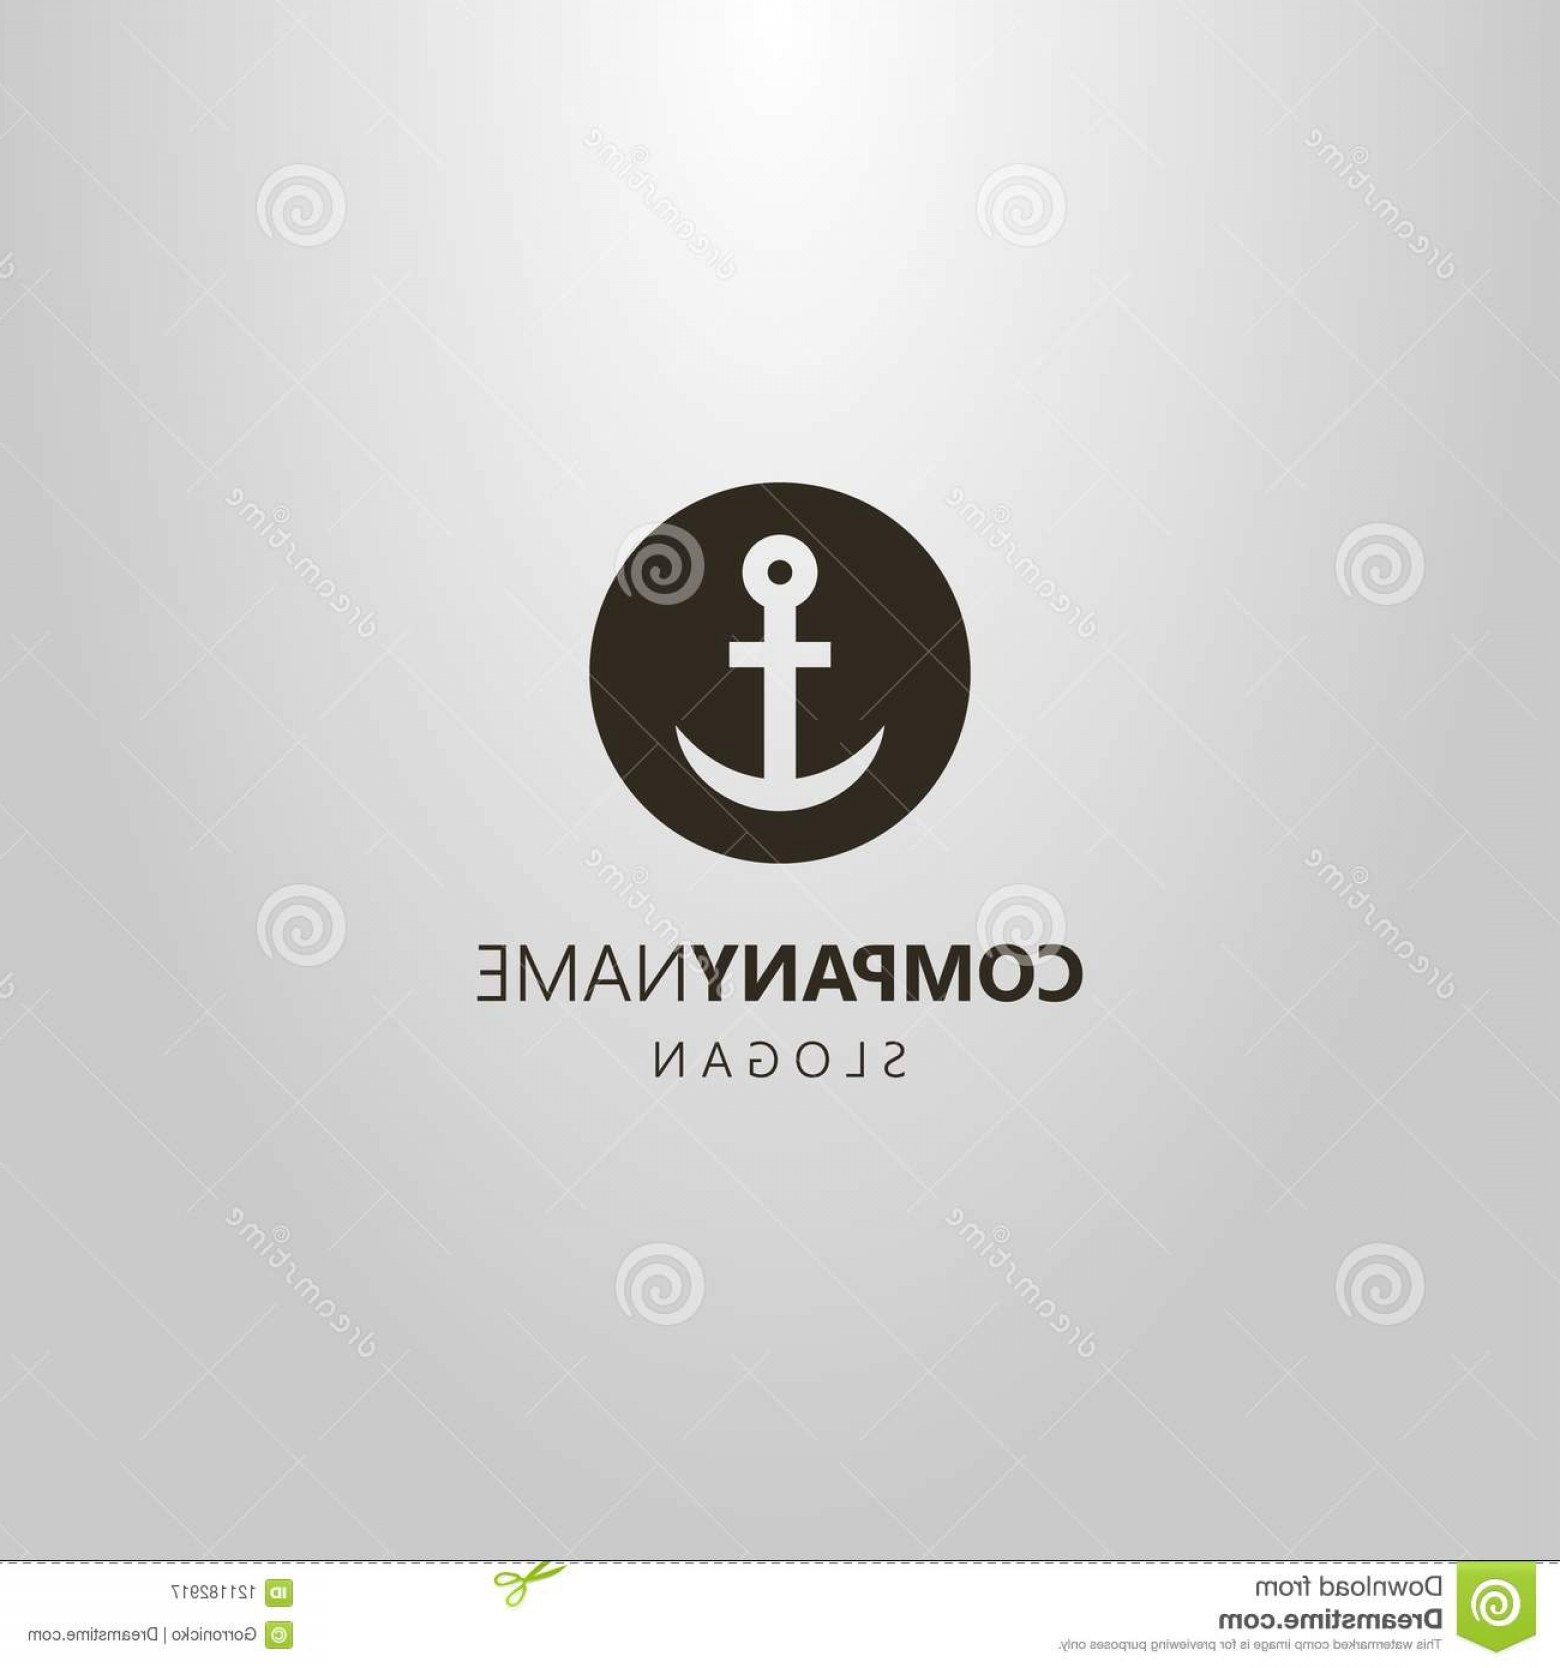 Black And White Negative Vector: Black White Negative Space Round Simple Vector Anchor Logo Negative Space Round Simple Vector Anchor Logo Image